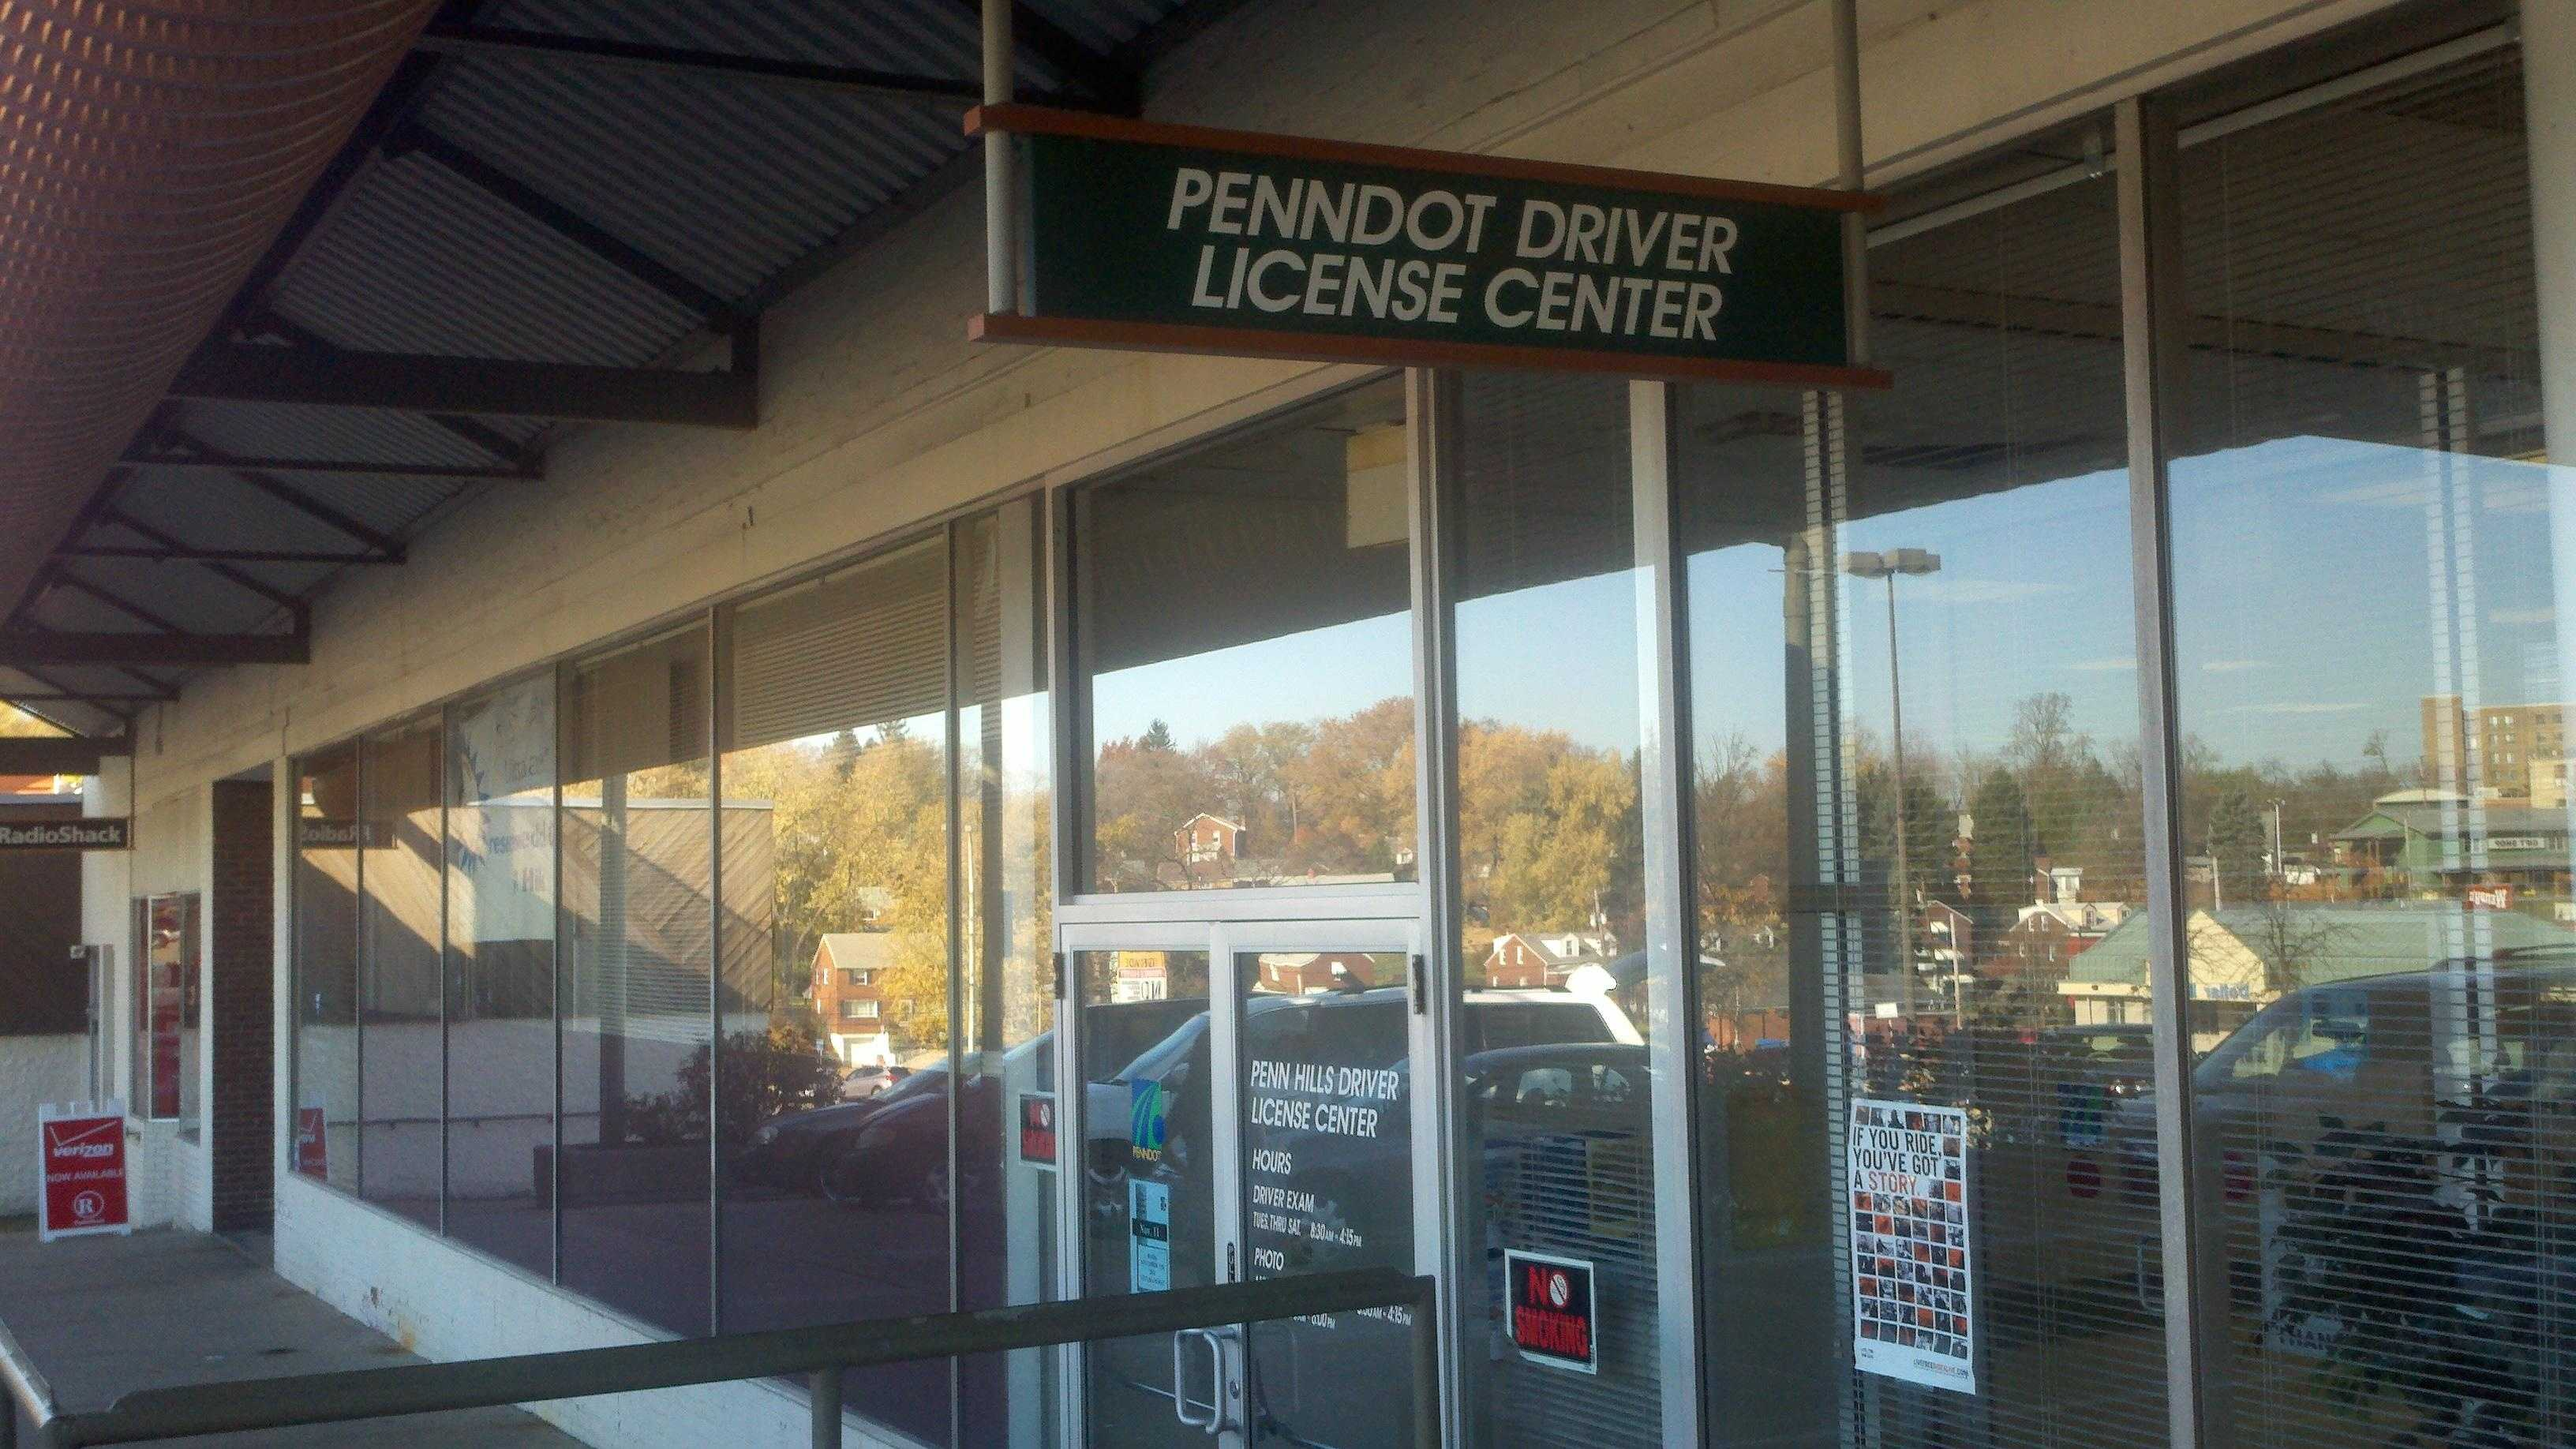 PennDOT Driver License Center